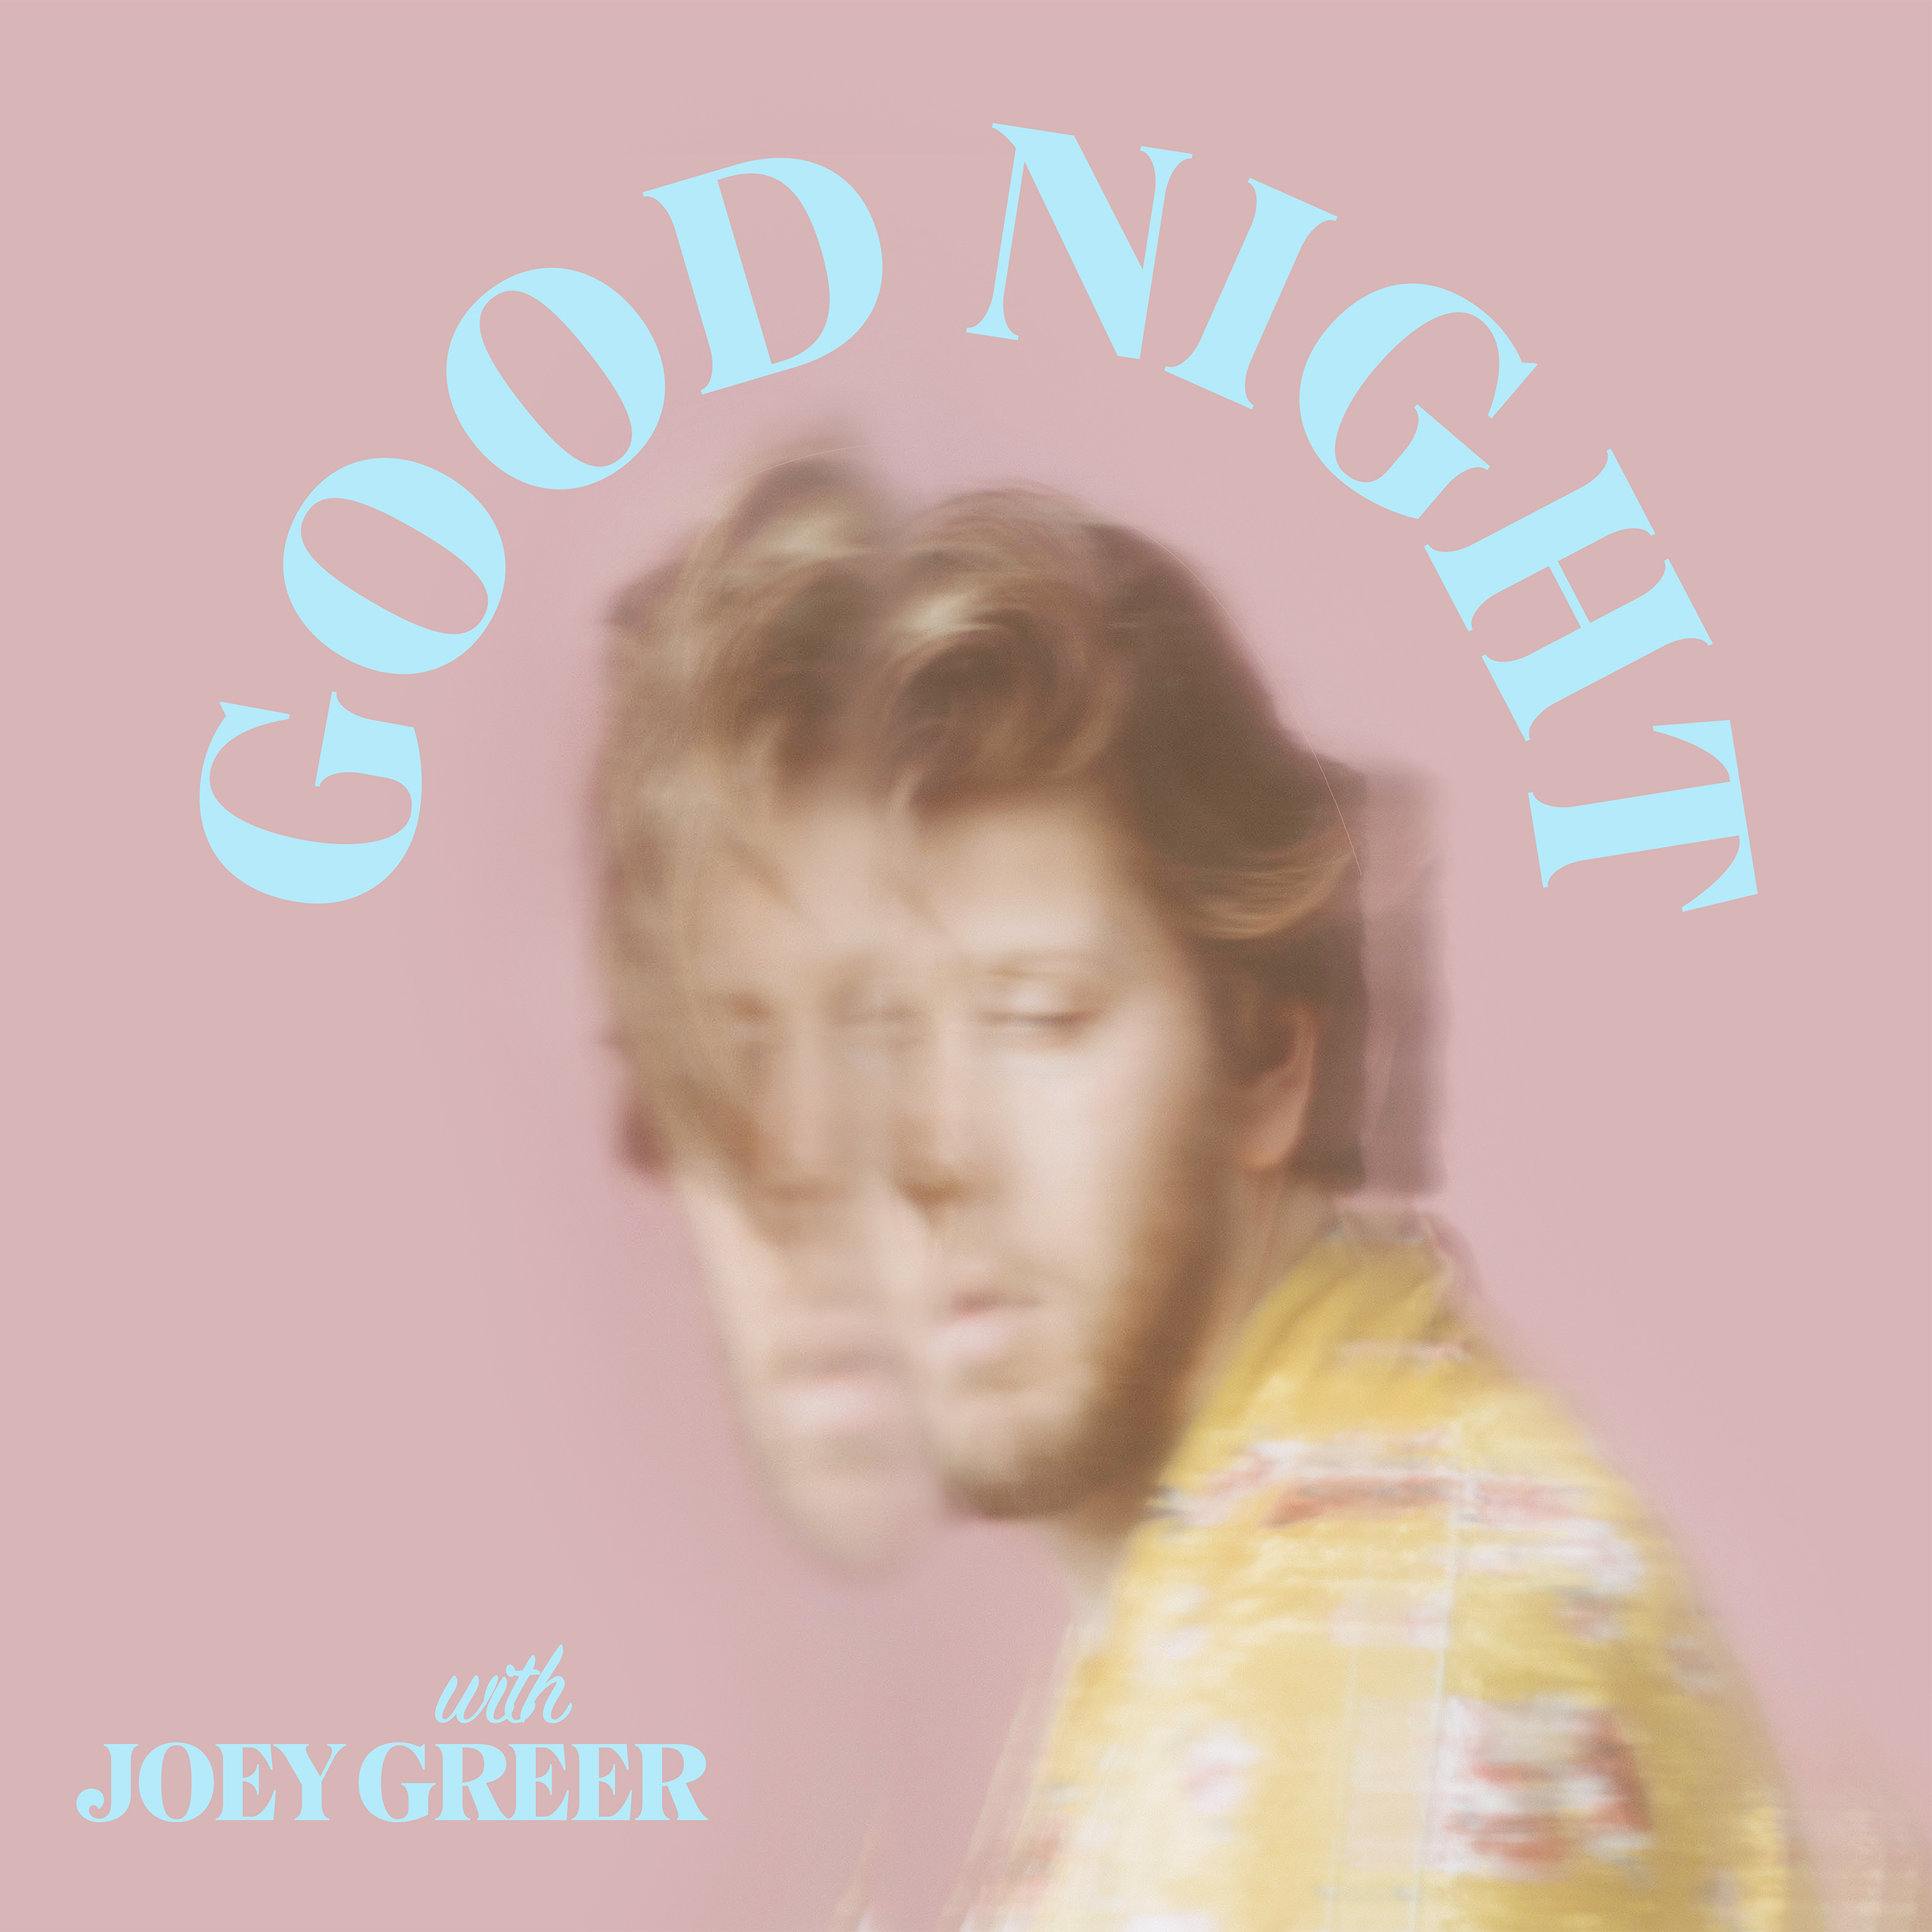 Joey Greer, good night, comedy album